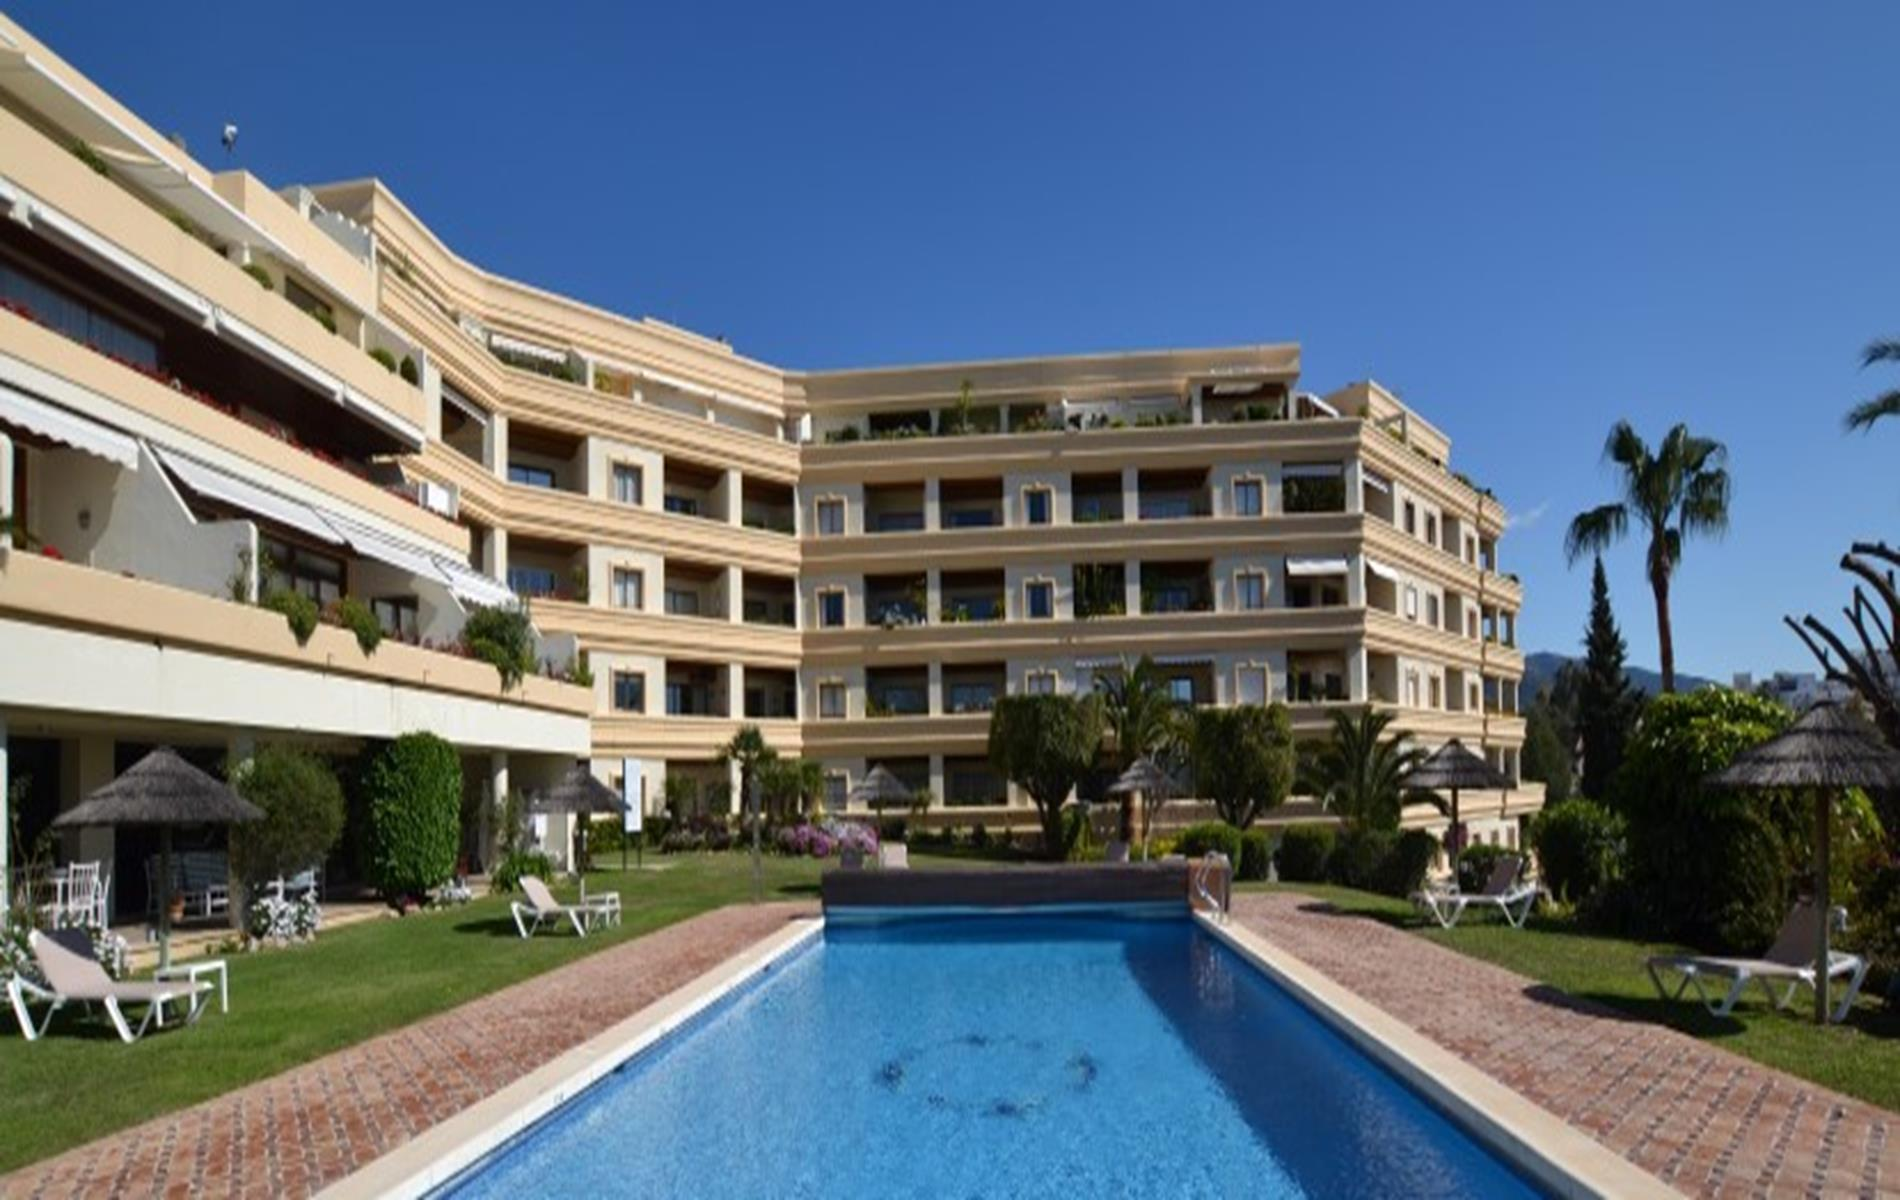 Cozy one bedroom apartment in Hotel Del Golf, Las Brisas